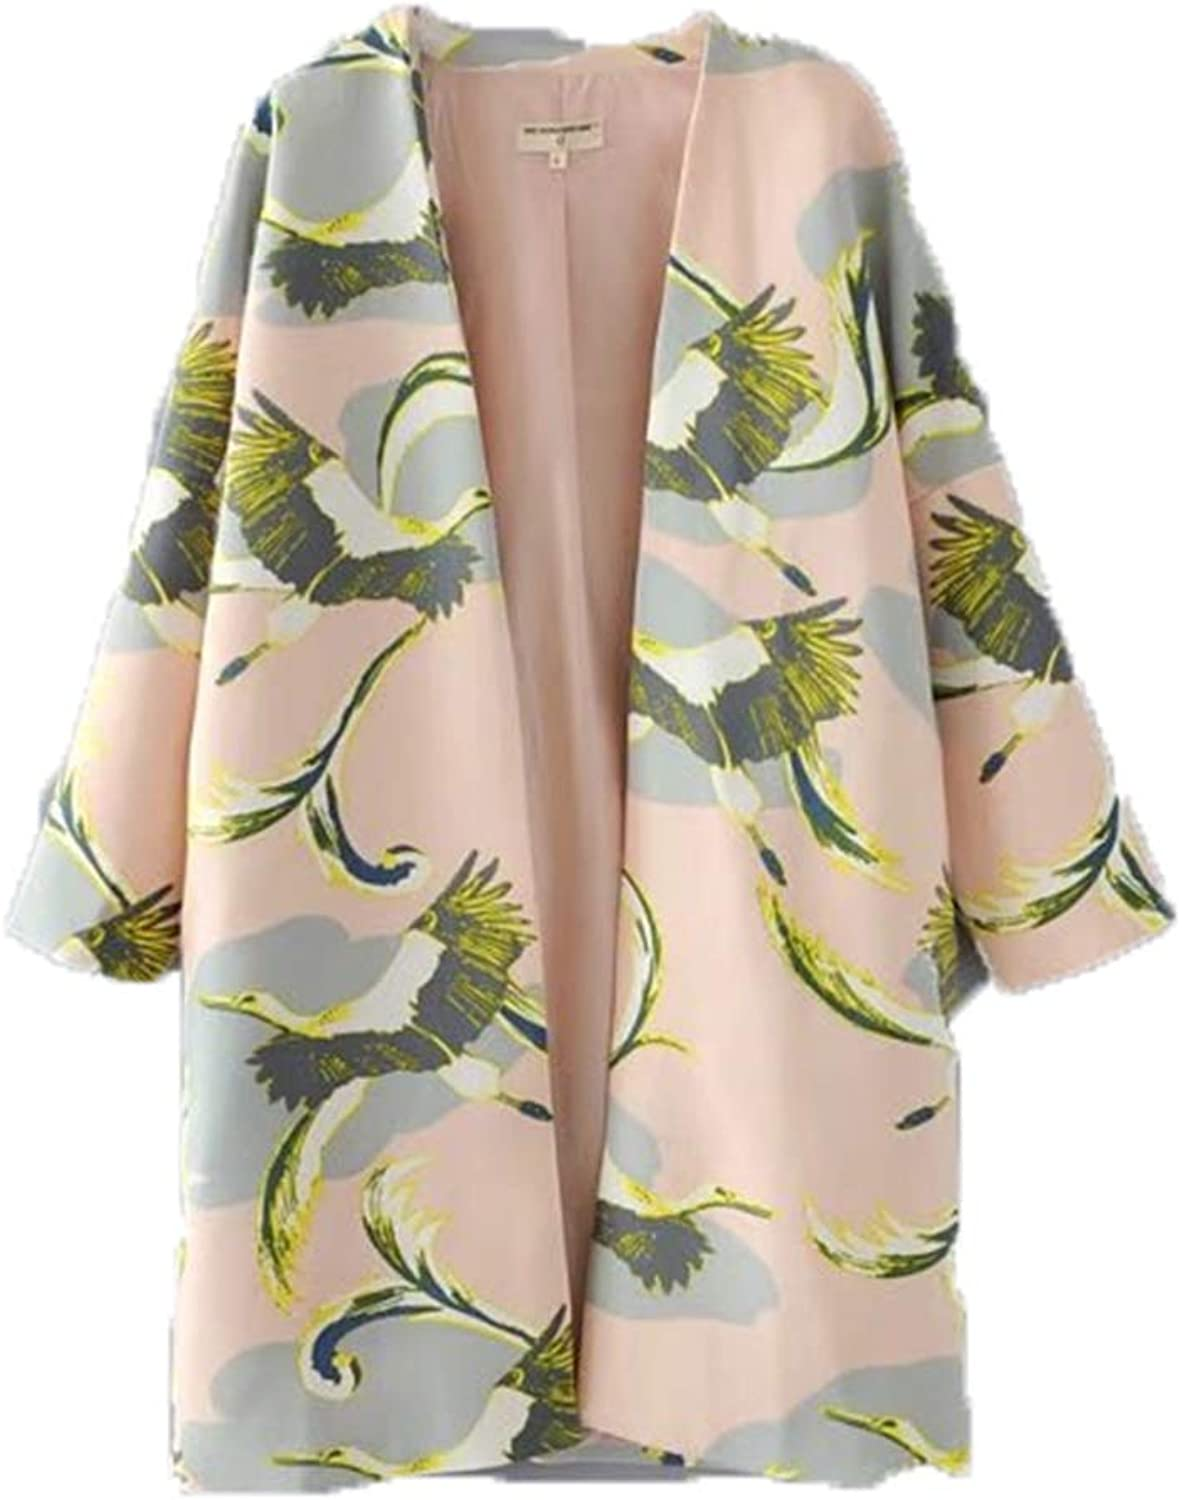 Spring Trench Coat Women Cranes Printed Long Coat Female Casual Pockets Winter Outwears Clothing